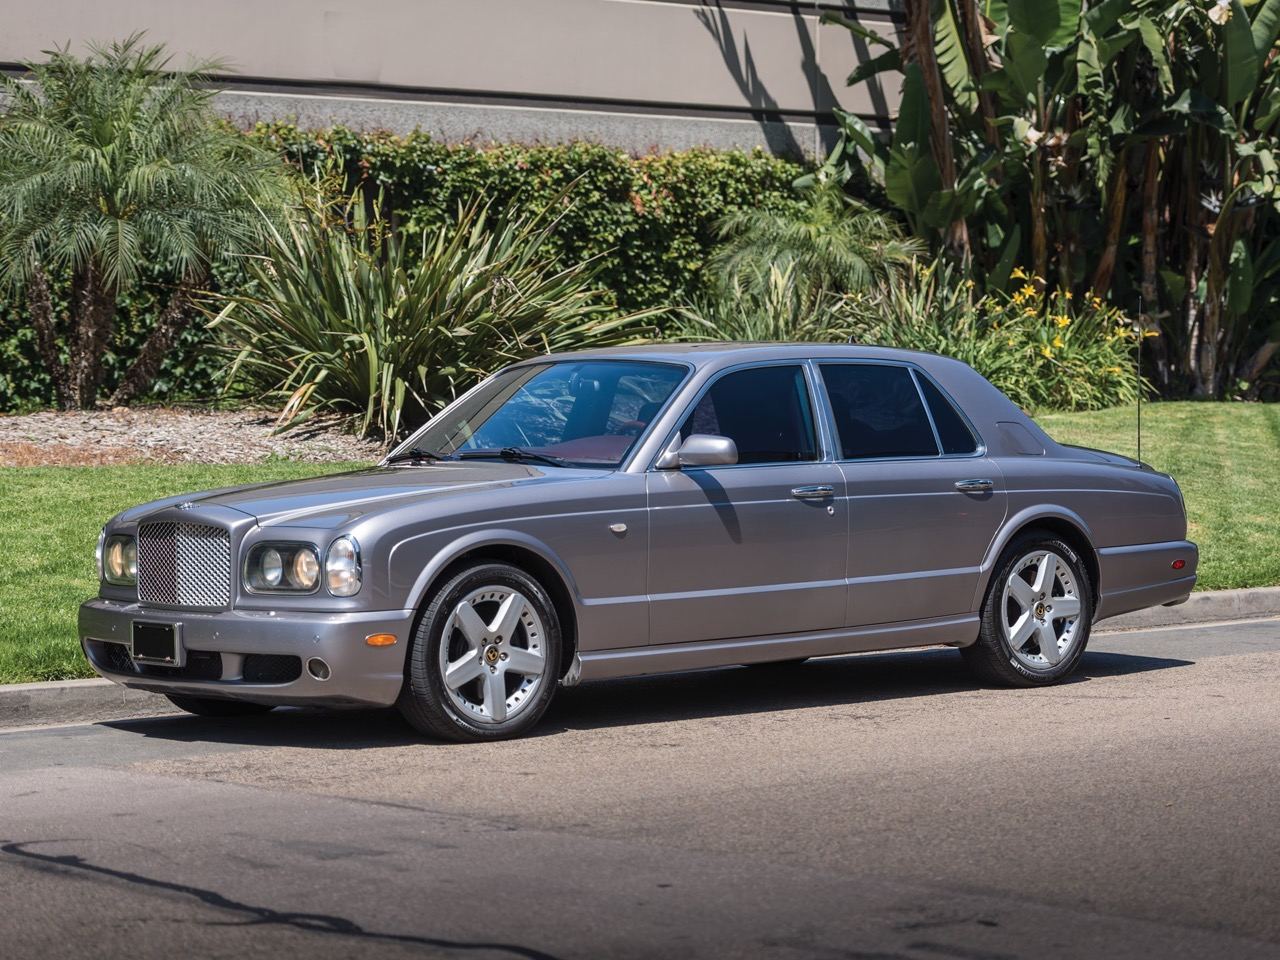 2003 Bentley Arnage T... Nickelle pour la retraite ! 2